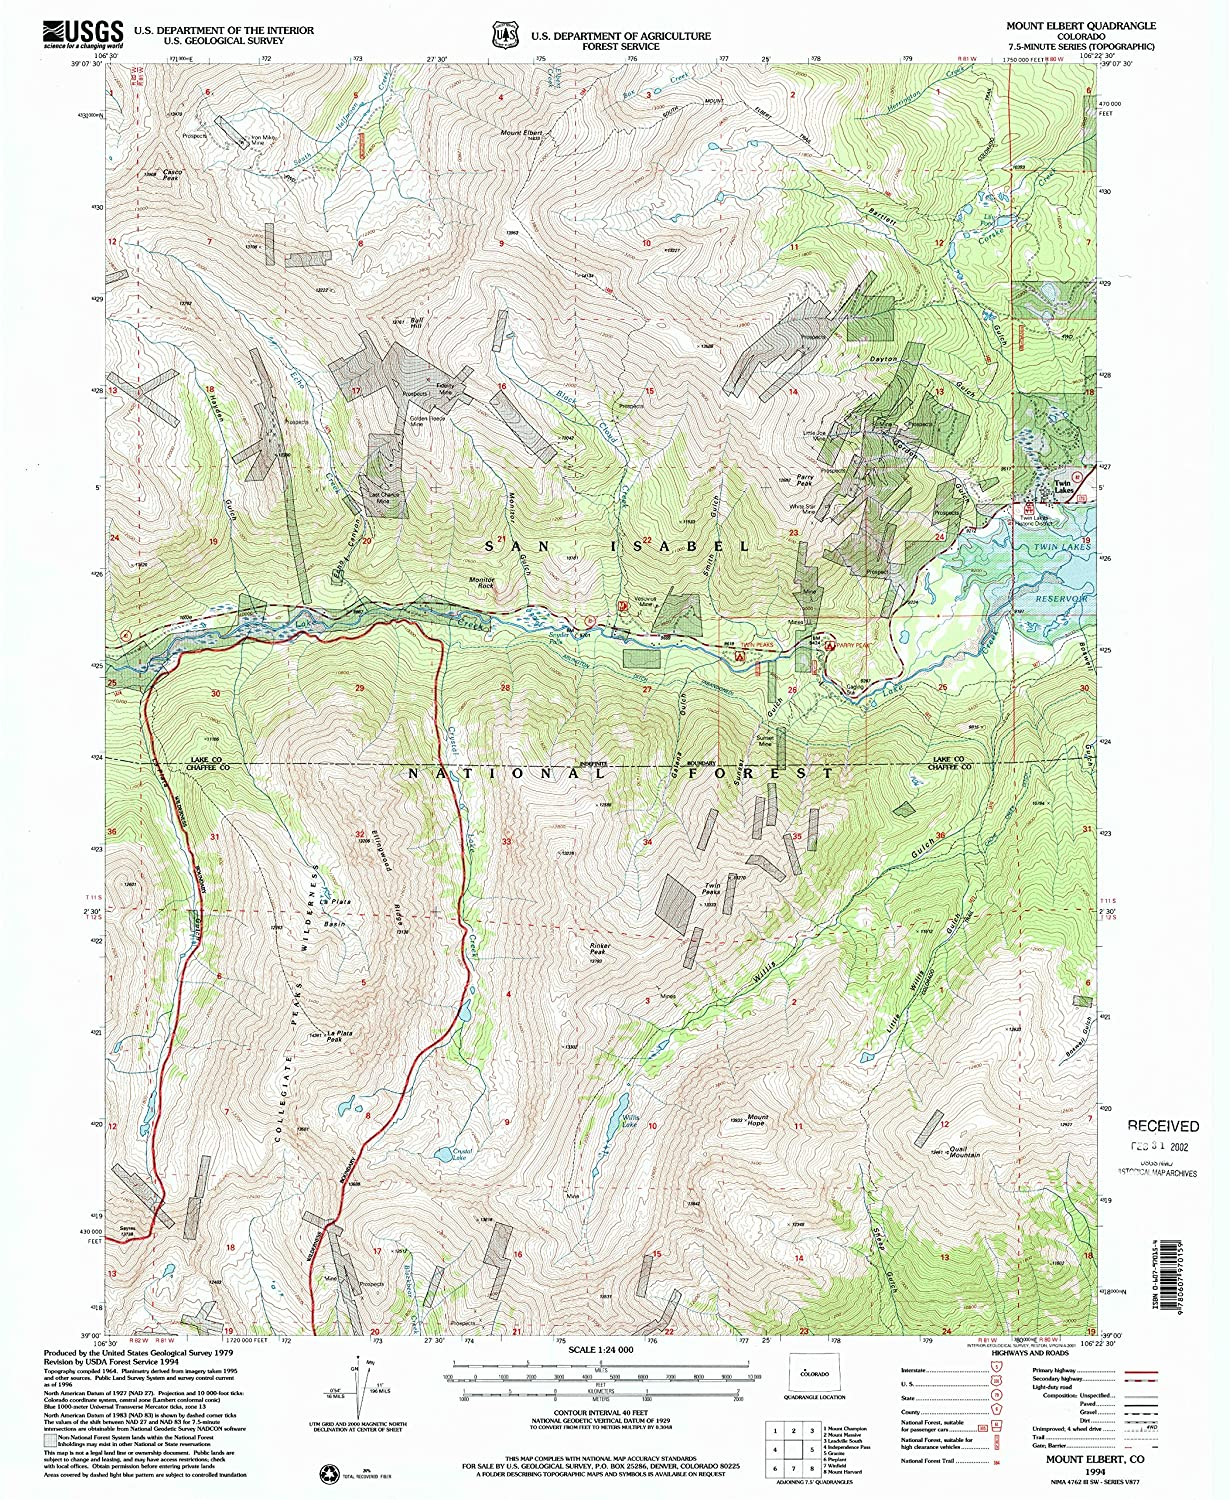 amazoncom mount elbert co topo map 124000 scale 75 x 75 minute historical 1994 updated 2001 267 x 219 in paper sports outdoors